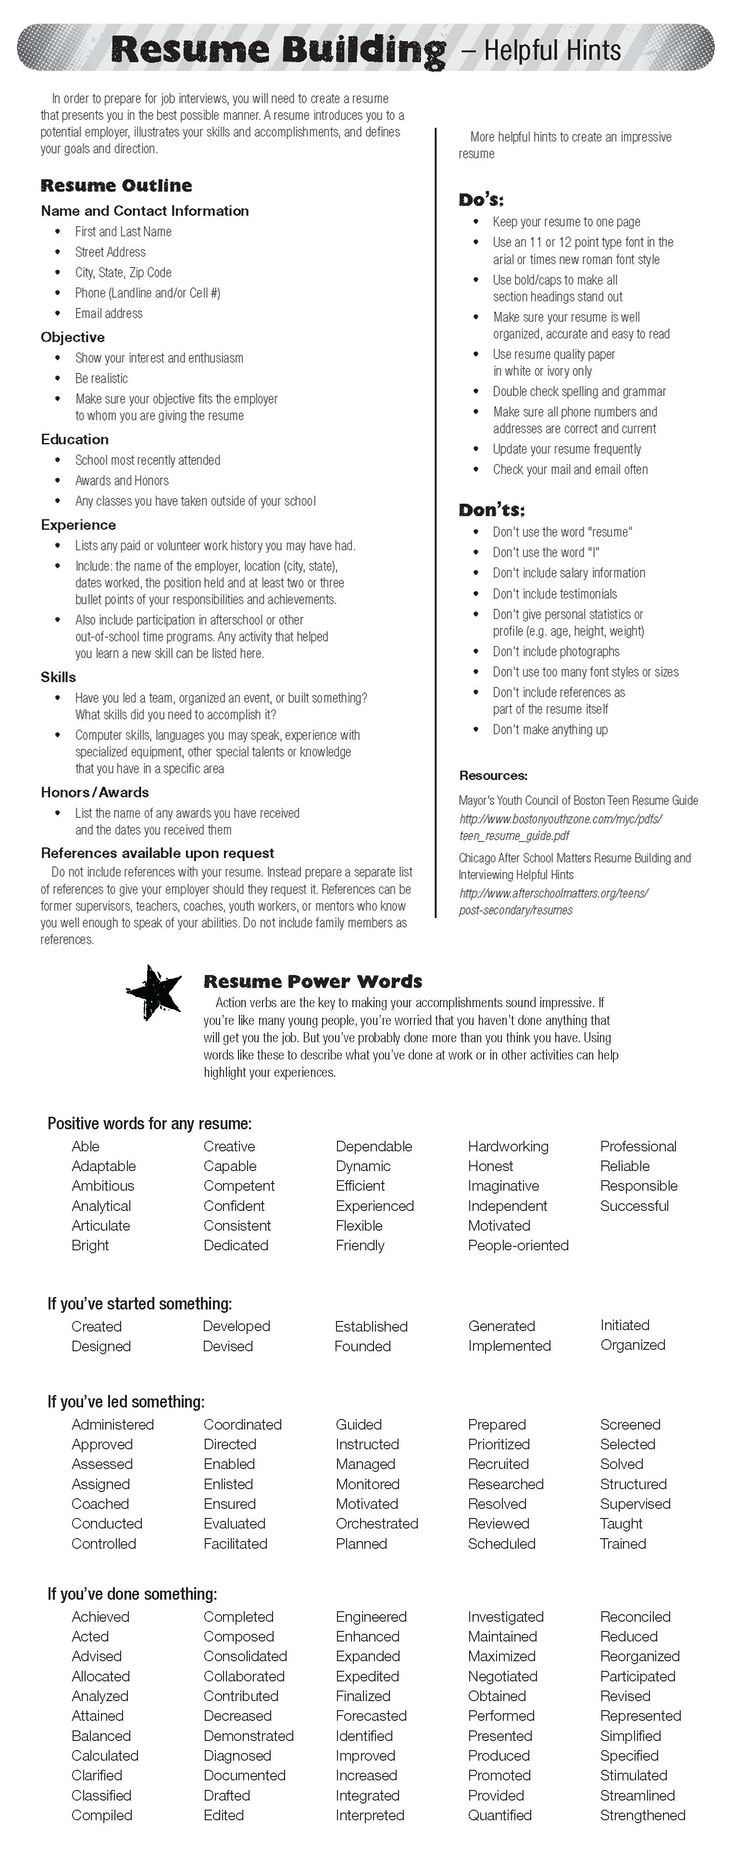 Opposenewapstandardsus  Winsome  Ideas About Resume On Pinterest  Cv Format Resume Cv And  With Interesting  Ideas About Resume On Pinterest  Cv Format Resume Cv And Resume Templates With Cute Basic Resume Layout Also Resume Executive Summary Examples In Addition Best Sample Resumes And Resume Wizard Online As Well As Typing Skills On Resume Additionally Resume For Security Officer From Pinterestcom With Opposenewapstandardsus  Interesting  Ideas About Resume On Pinterest  Cv Format Resume Cv And  With Cute  Ideas About Resume On Pinterest  Cv Format Resume Cv And Resume Templates And Winsome Basic Resume Layout Also Resume Executive Summary Examples In Addition Best Sample Resumes From Pinterestcom